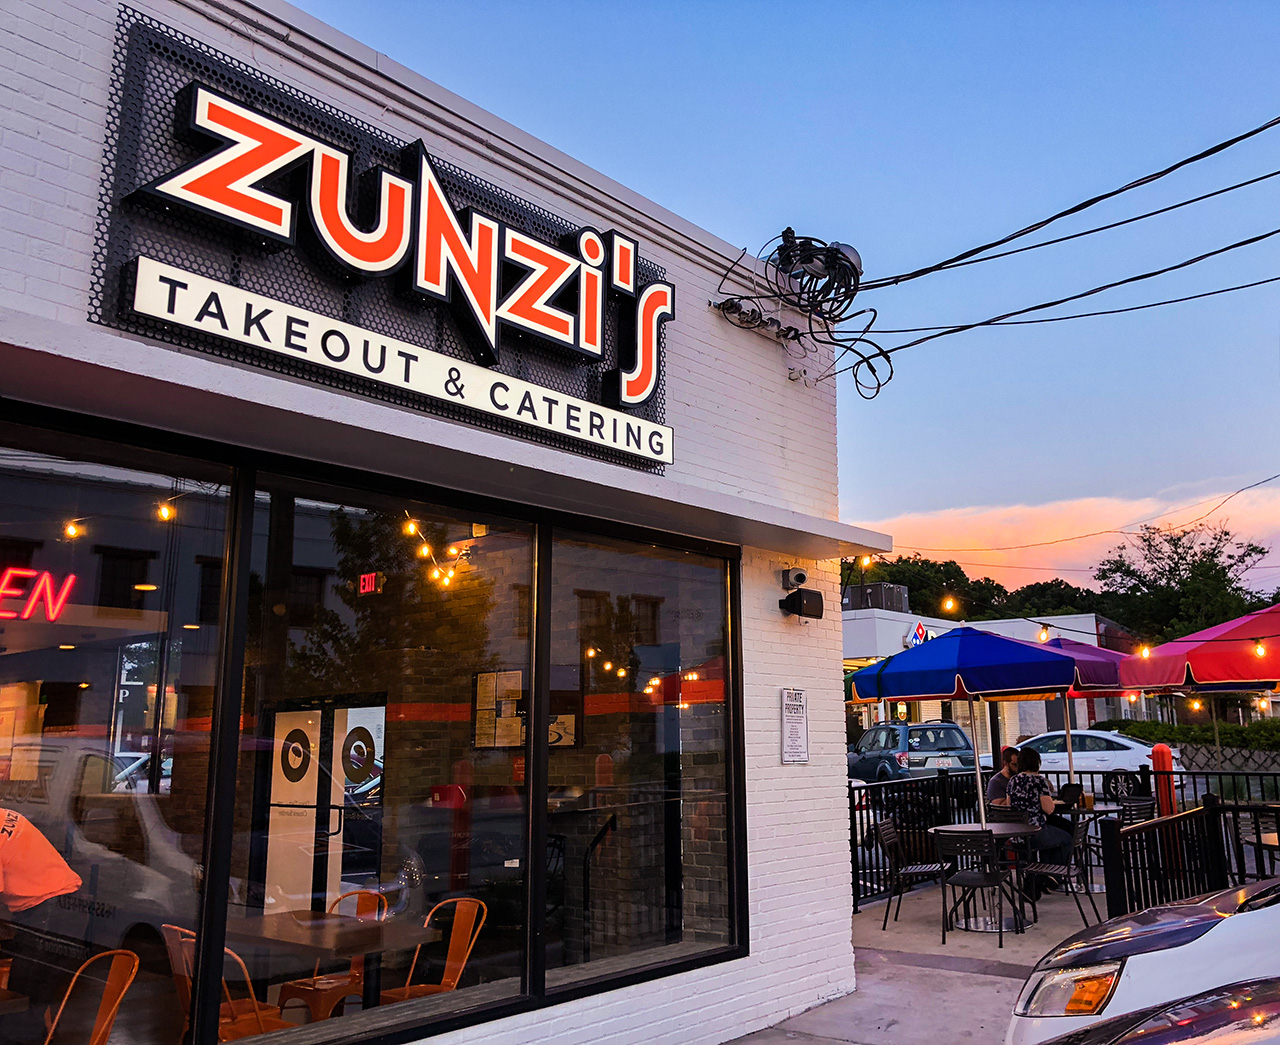 S#*t yeah! Zunzi's will leave you full, happy, and casually